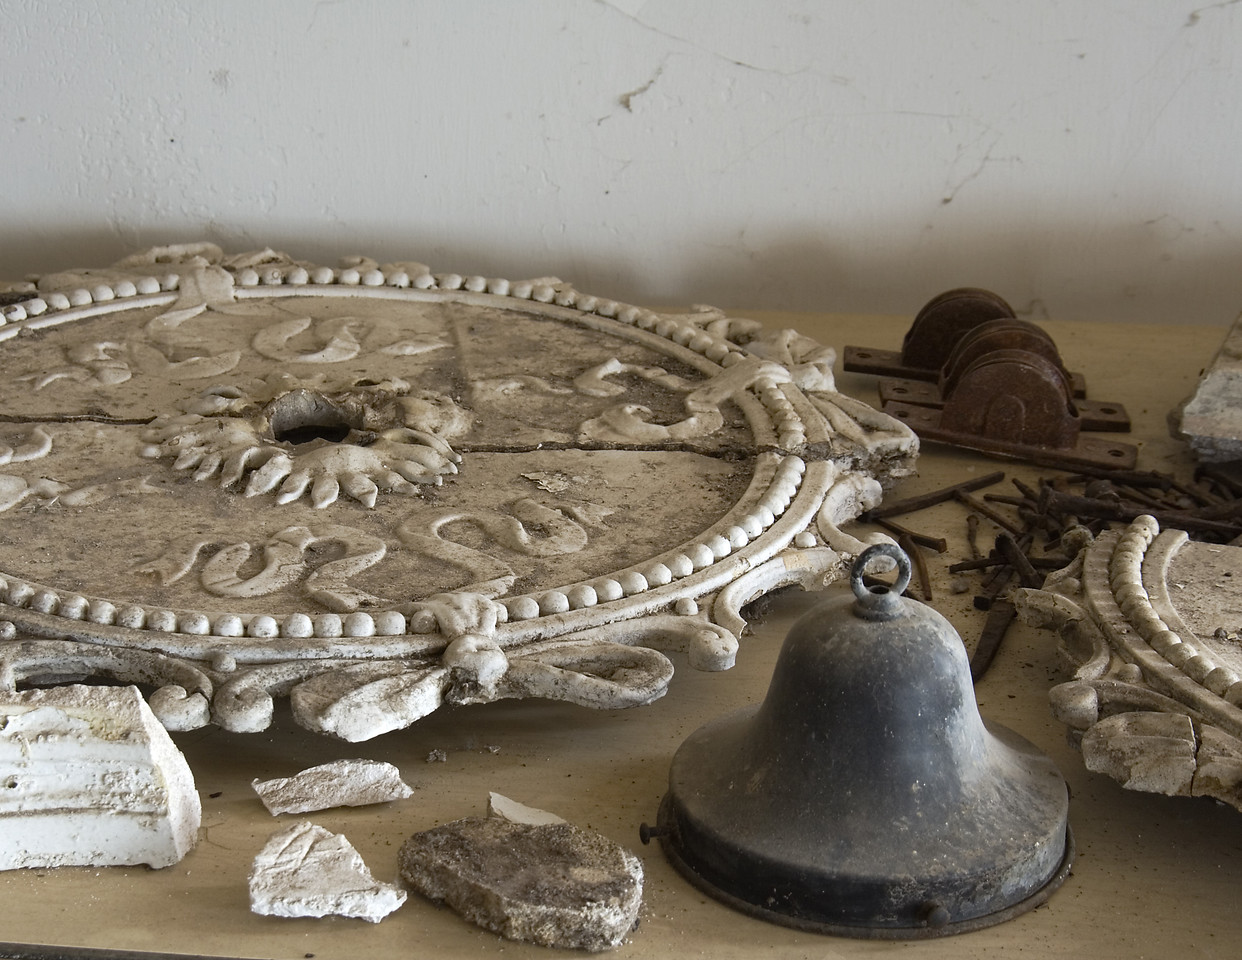 """""""Fixtures""""<br /> Most of the plaster decorations were crafted in place and could not be easily removed intact, but many fixtures of value were removed after the Castle closed."""